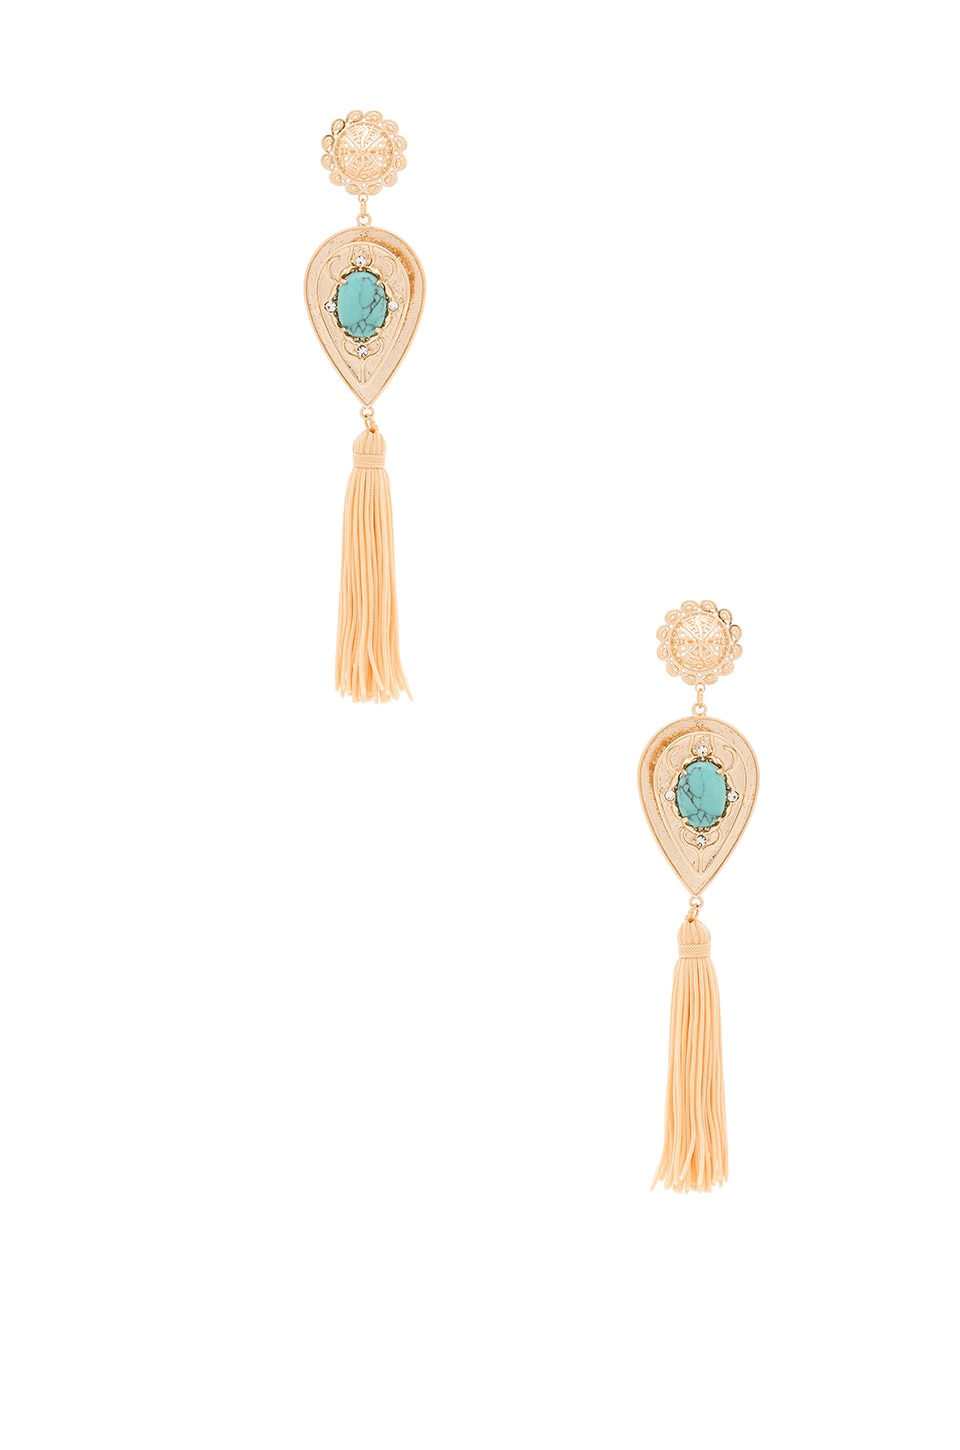 Samantha Wills Nightfall Re Large Drop Earrings In Shiny Gold